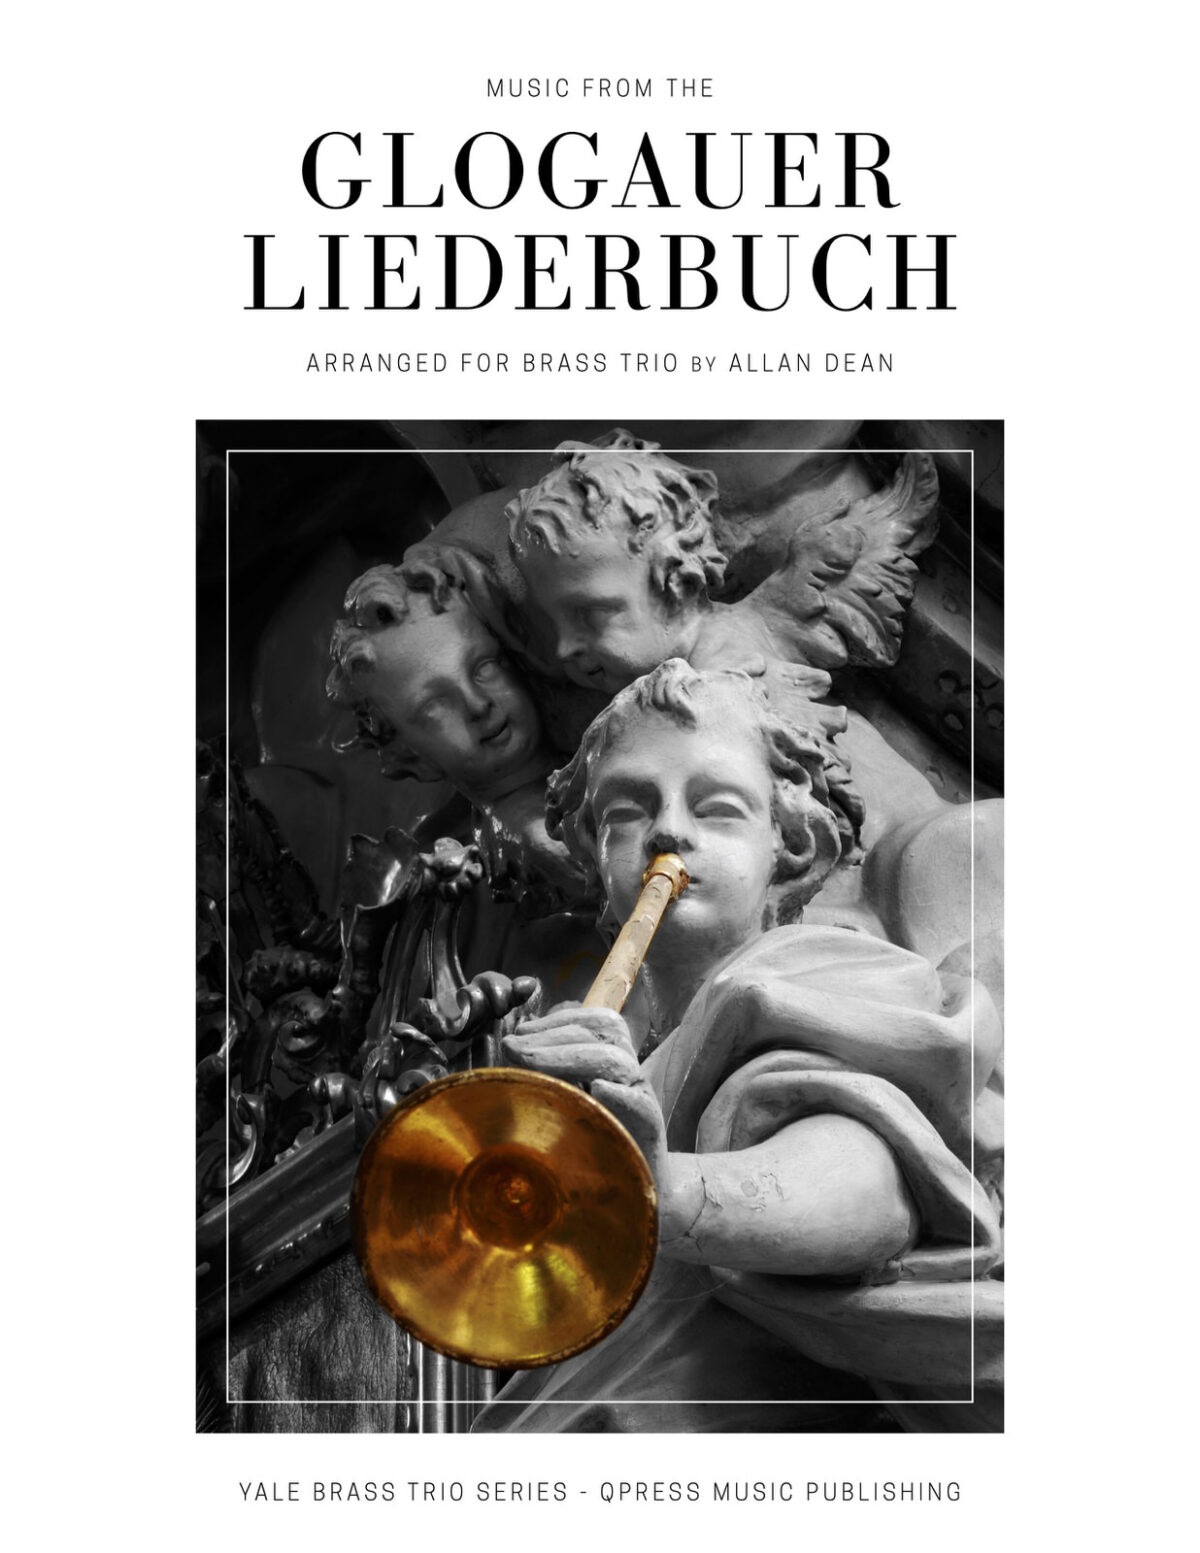 Music from the Glogauer Liederbuch (With Yale Brass Trio Recordings)